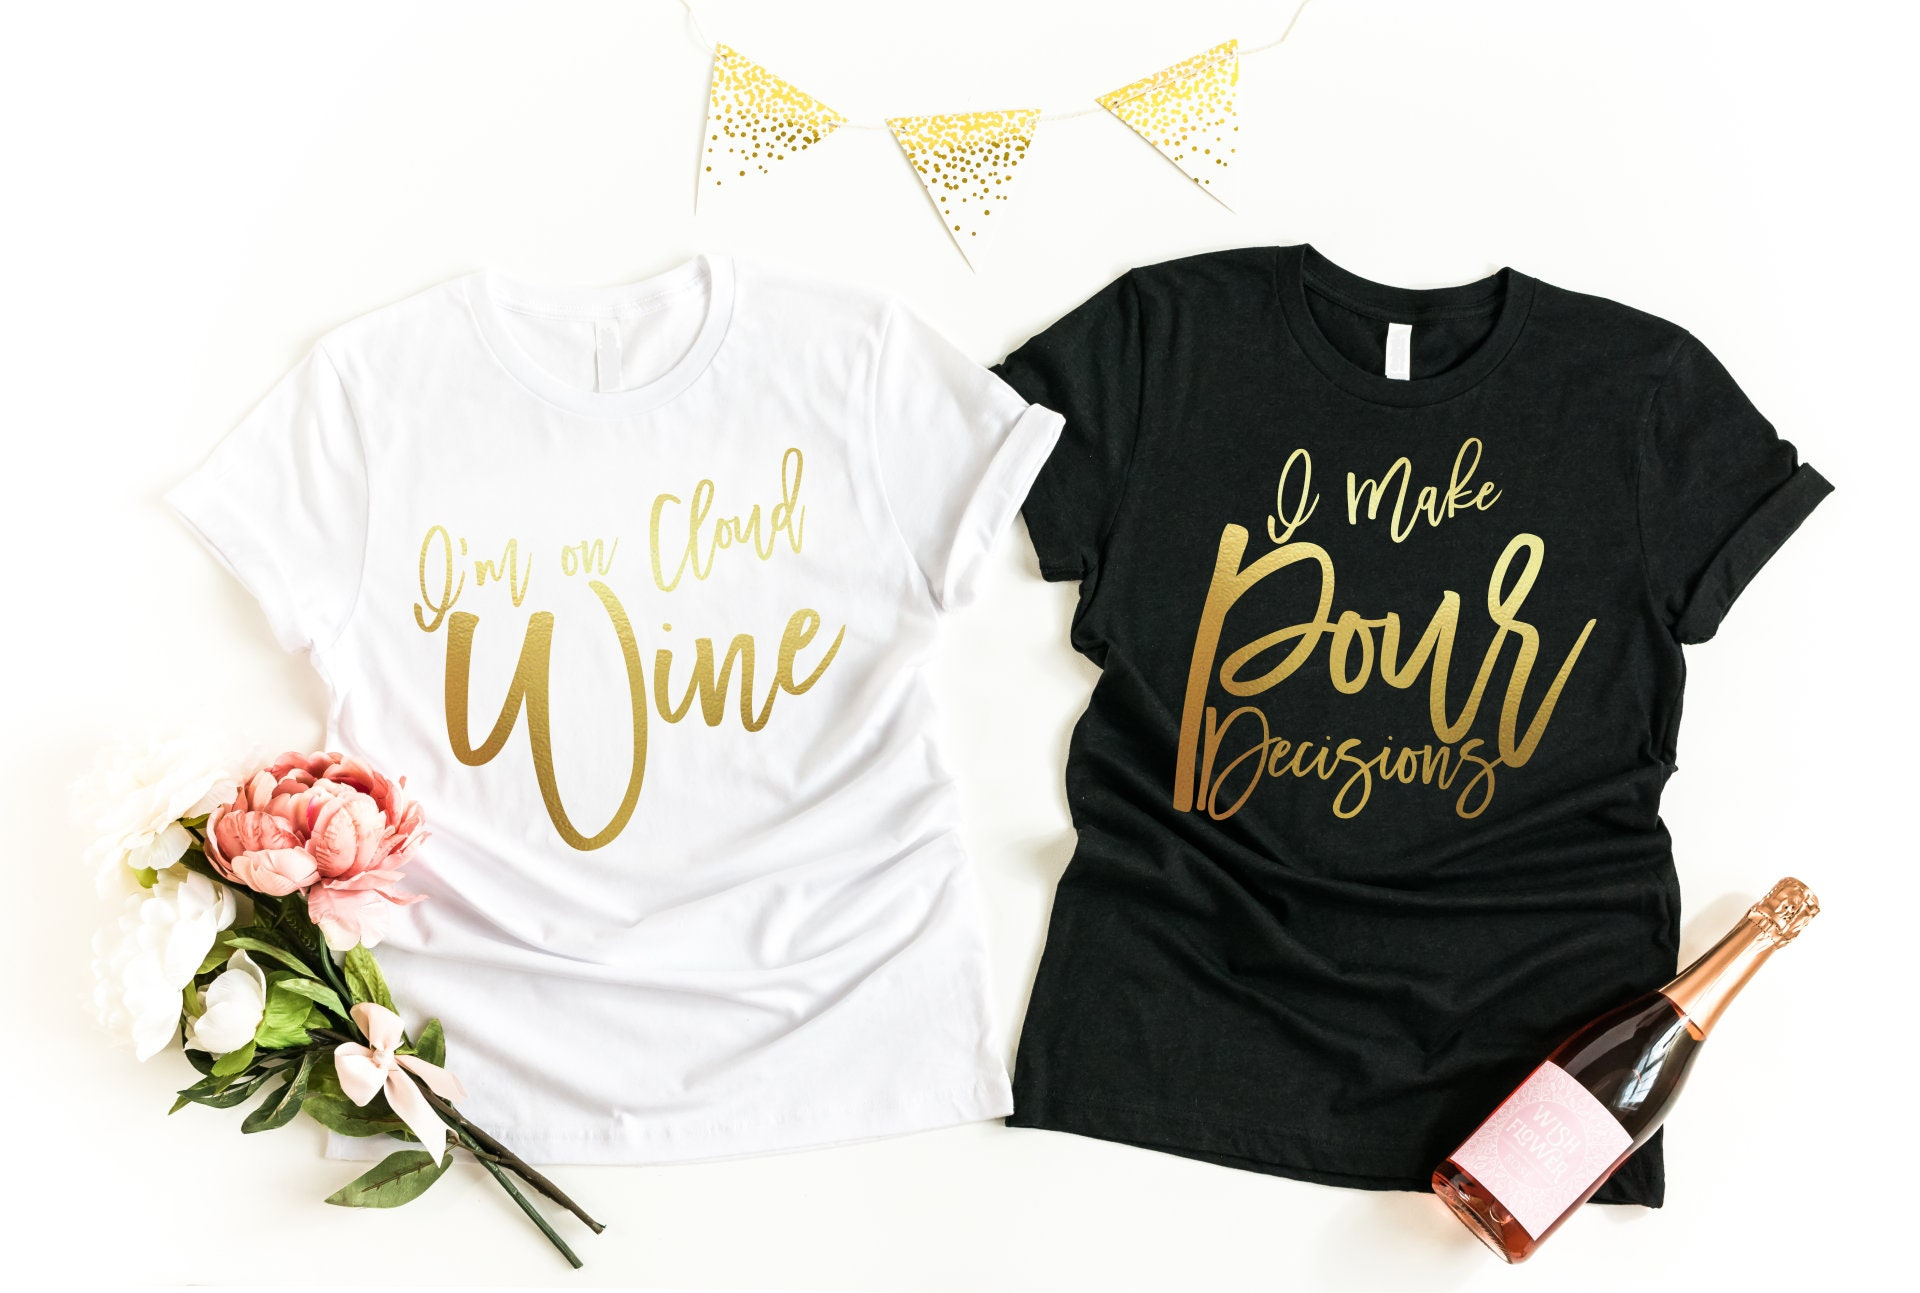 ed703718e Brunch Shirts, Girls' Weekend Shirts, Funny Wine Quotes T-shirts, Wine  Lover T Shirts, Bachelorette Wine Shirts, Free Personalization